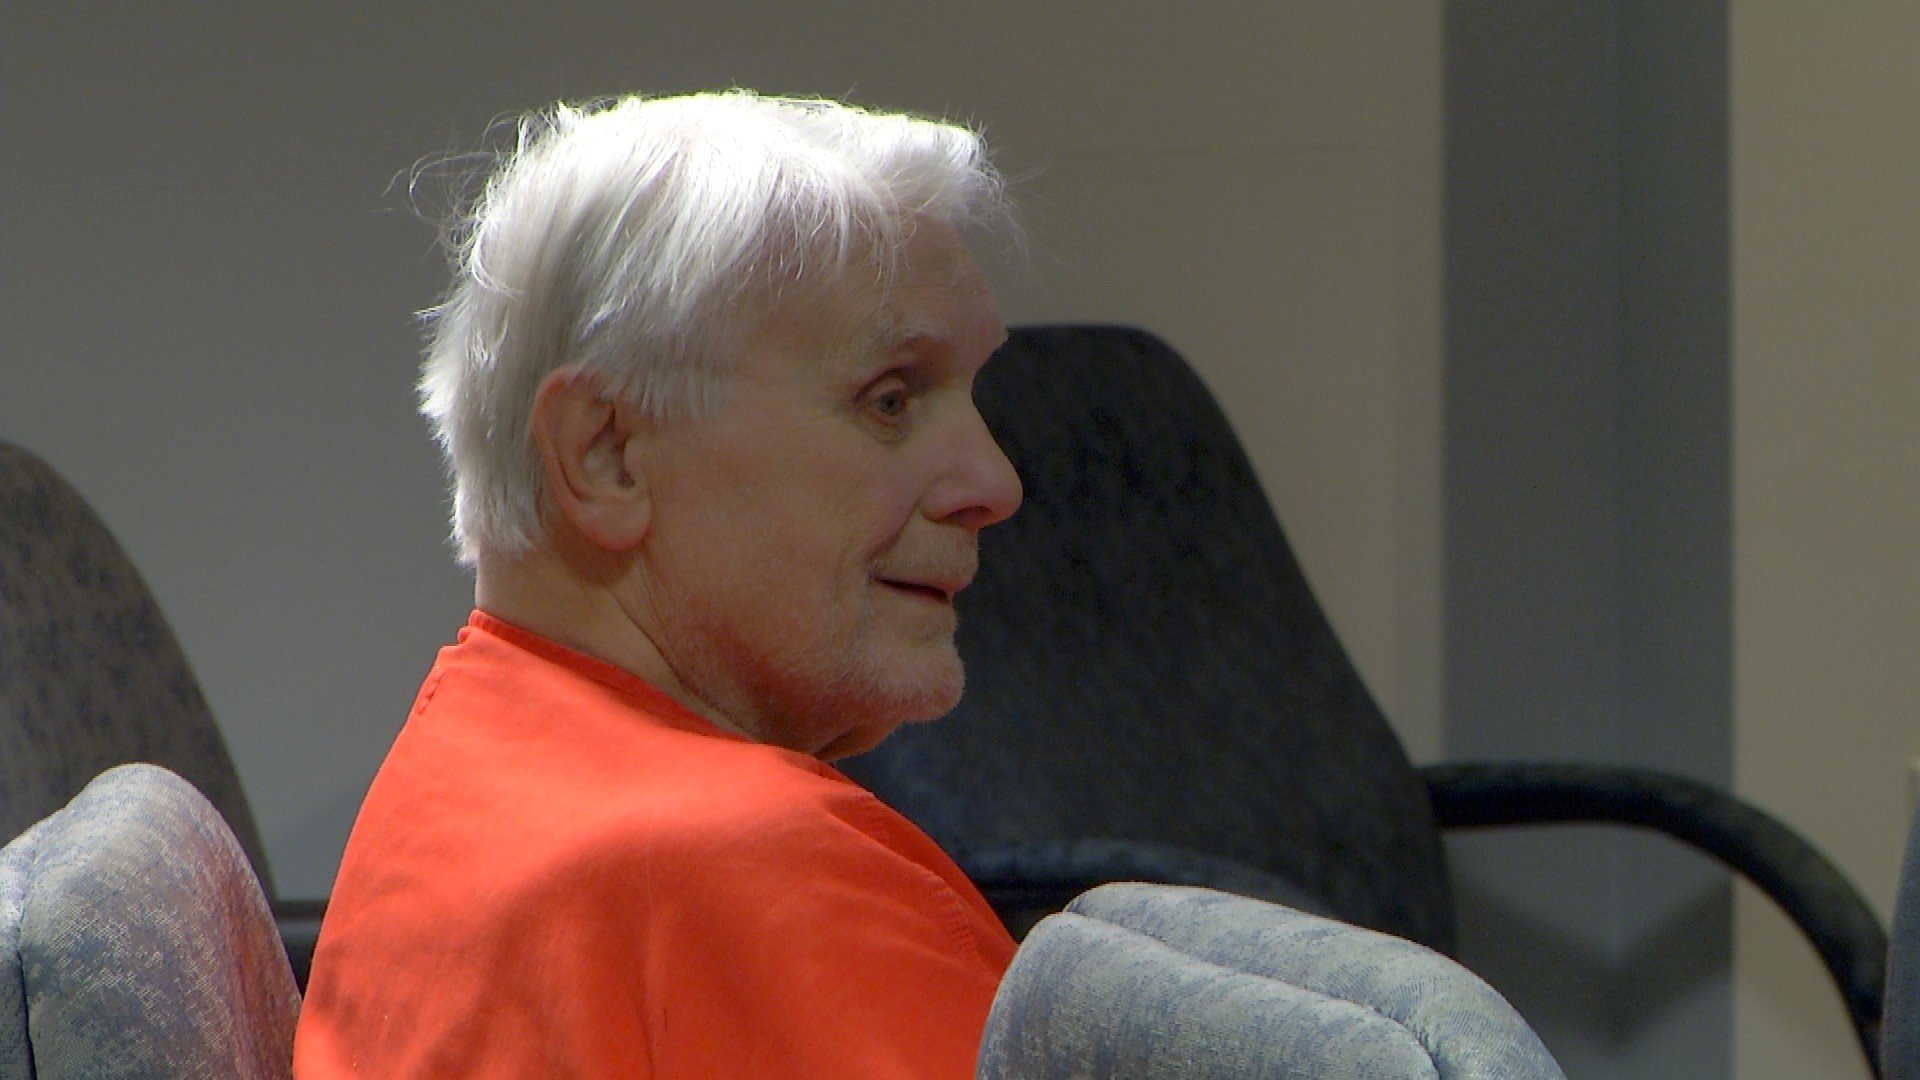 Cheboygan Man Accused of Killing His Wife More than 40 Years